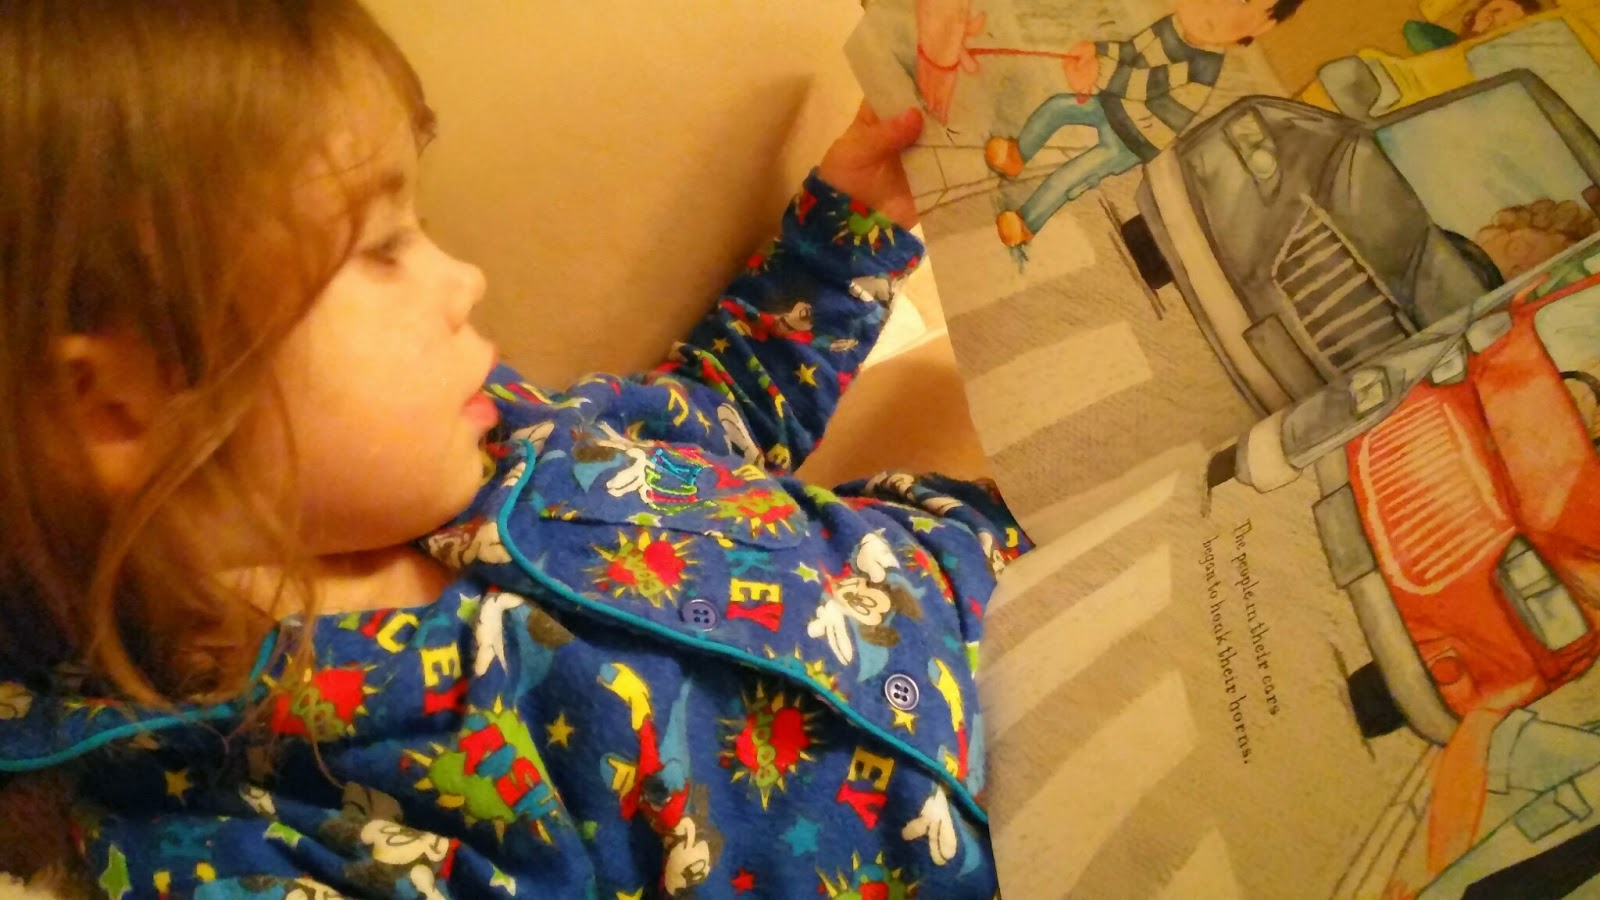 youngest reading her book